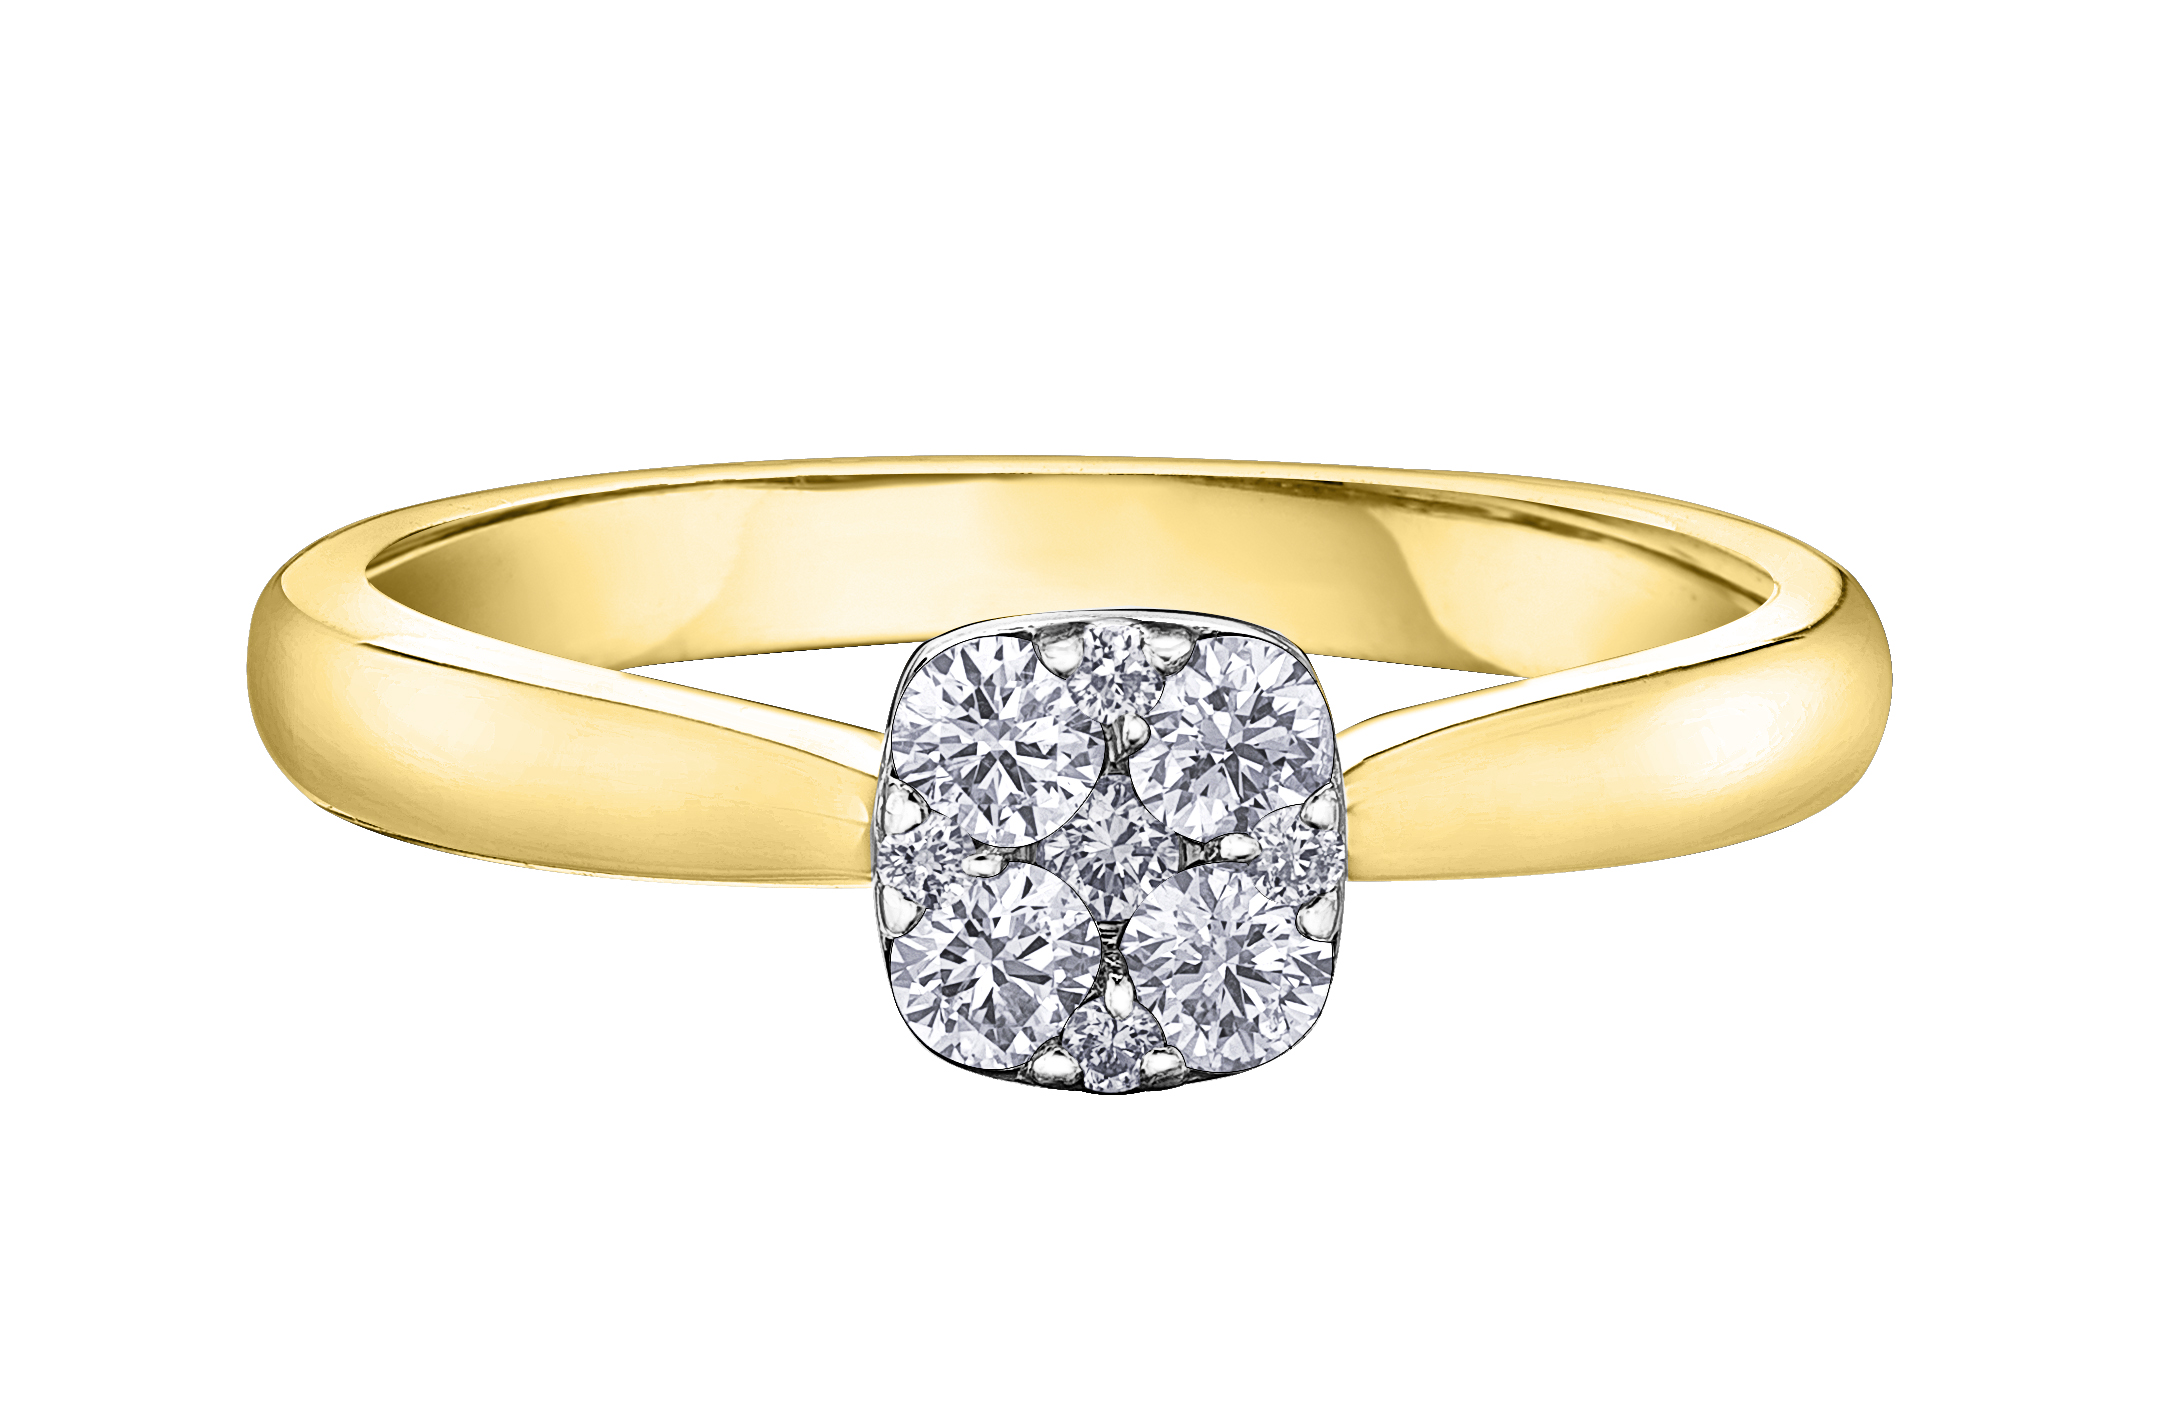 Engagement ring for woman -10K yellow Gold & Diamonds